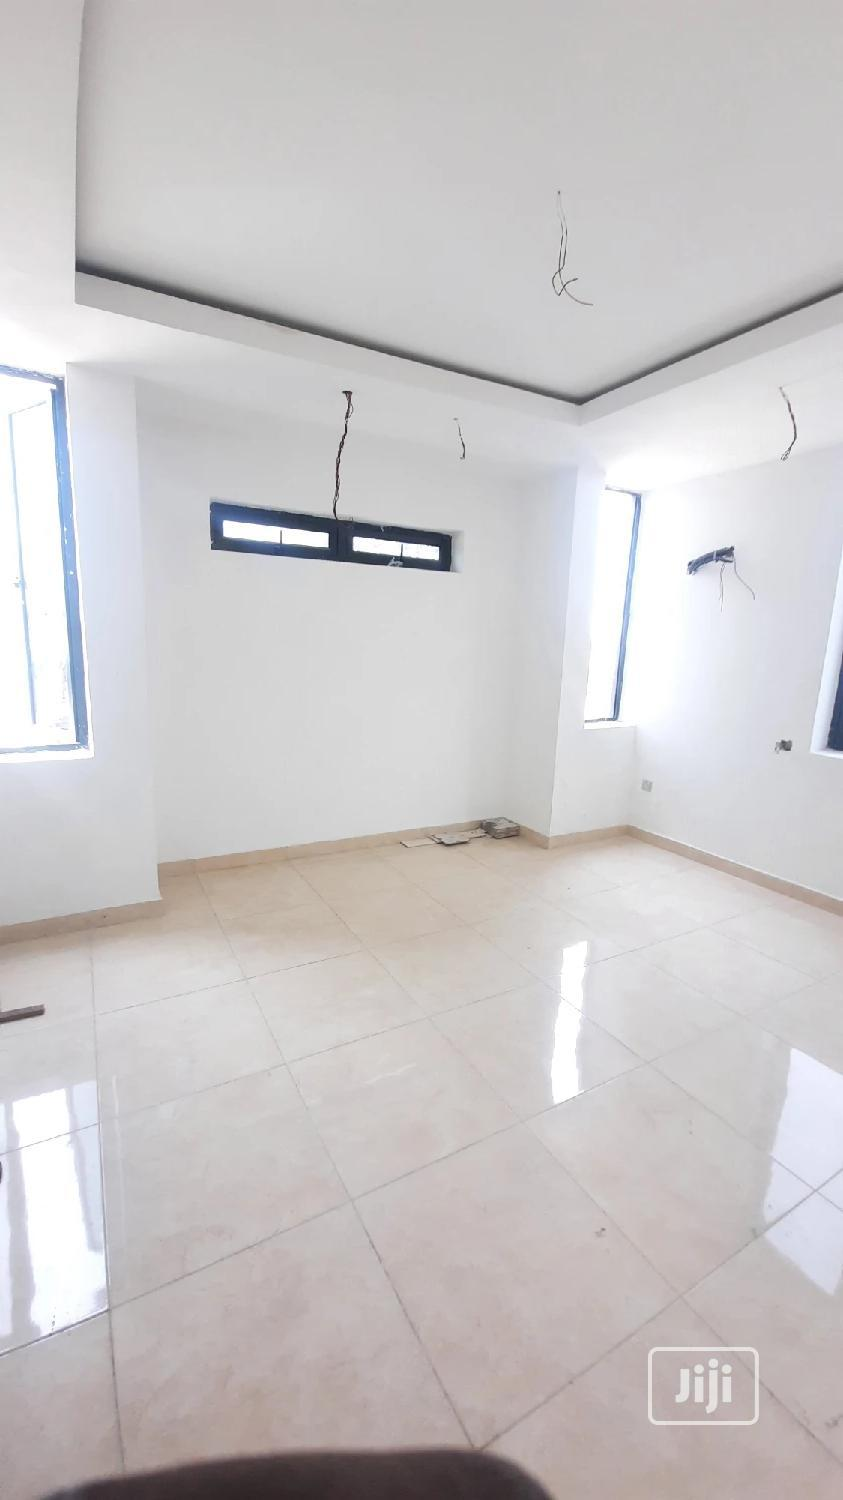 Newly Built 4 Bedroom Semi-Detached Duplex With BQ for Sale | Houses & Apartments For Sale for sale in Lekki Phase 1, Lekki, Nigeria